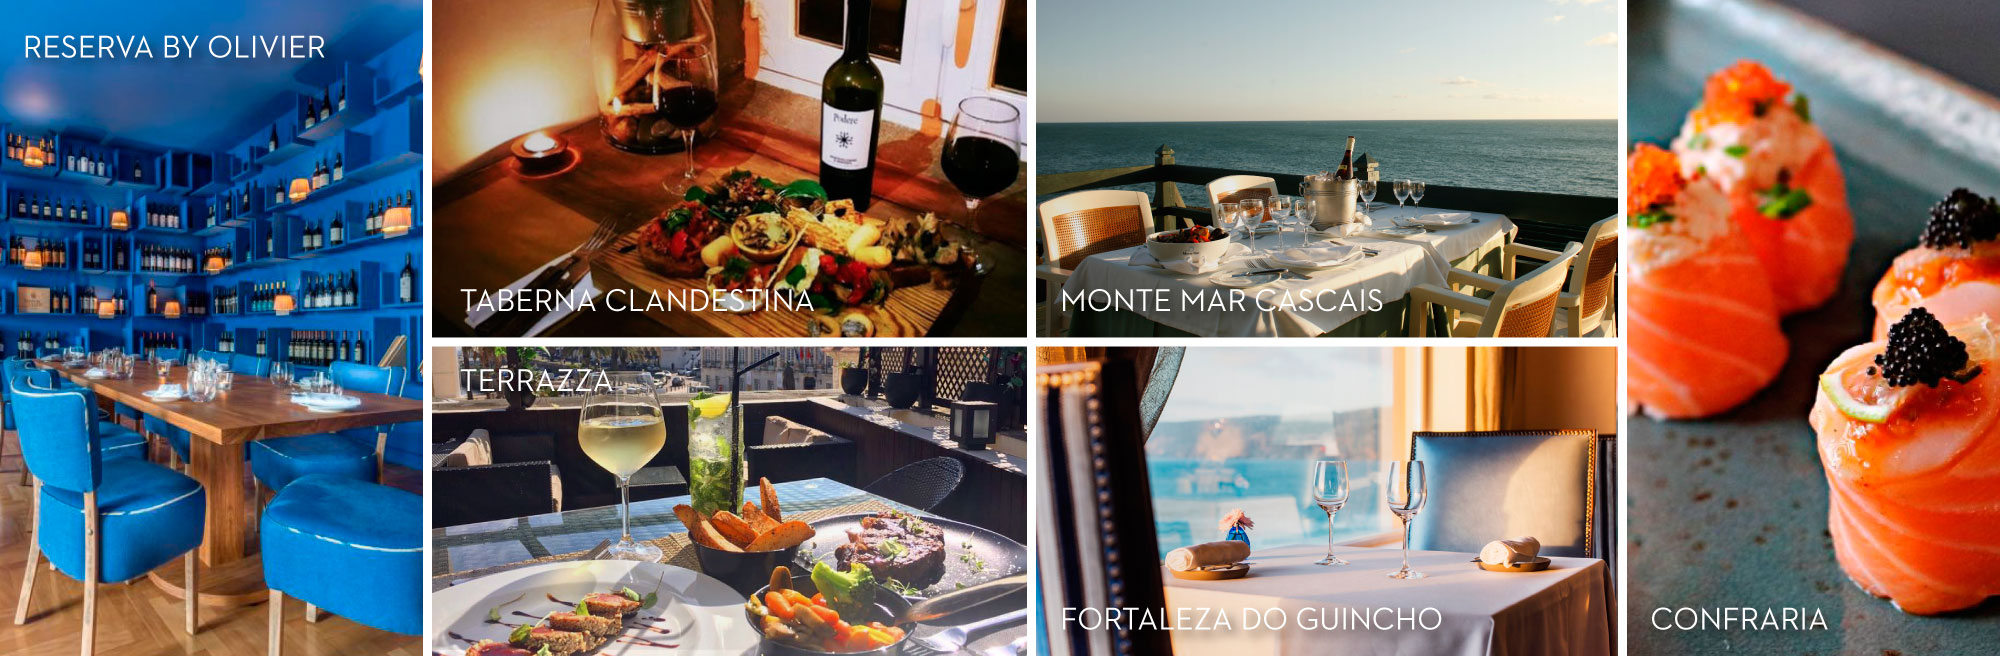 Best Restaurants In Cascais Hotel Quinta Da Marinha Resort